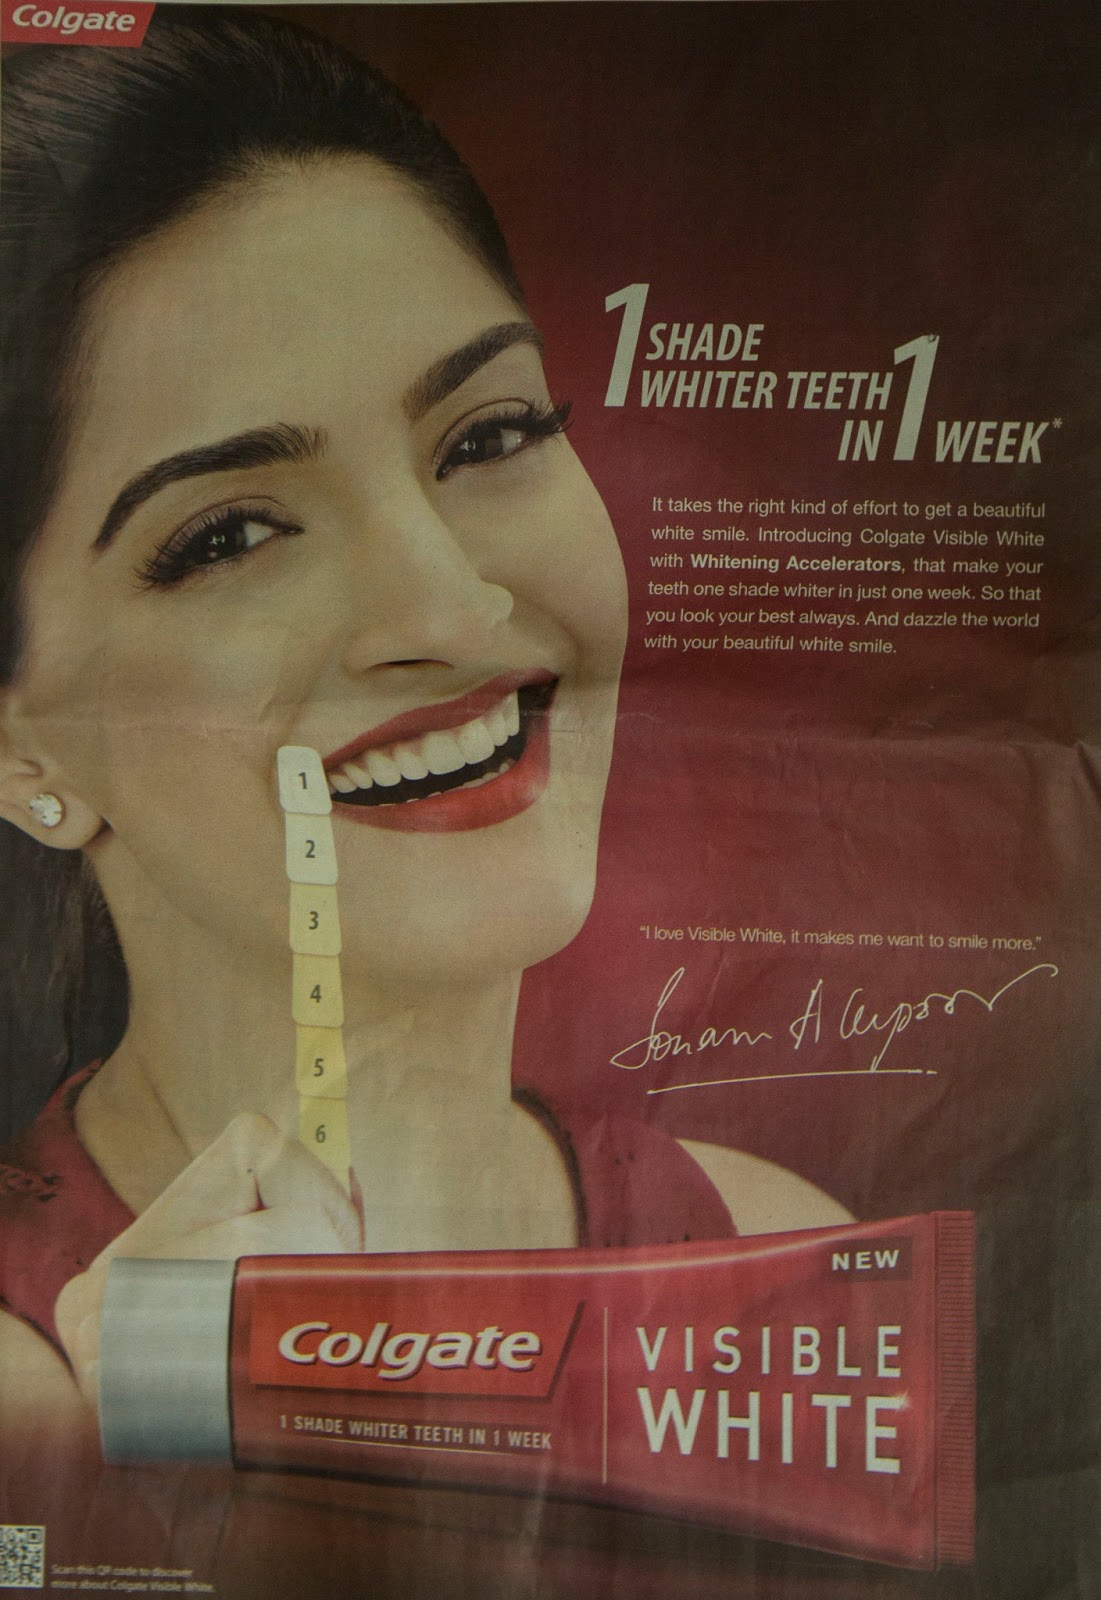 Colgate Visible White Toothpaste Ad Campaign | Ads Watcher